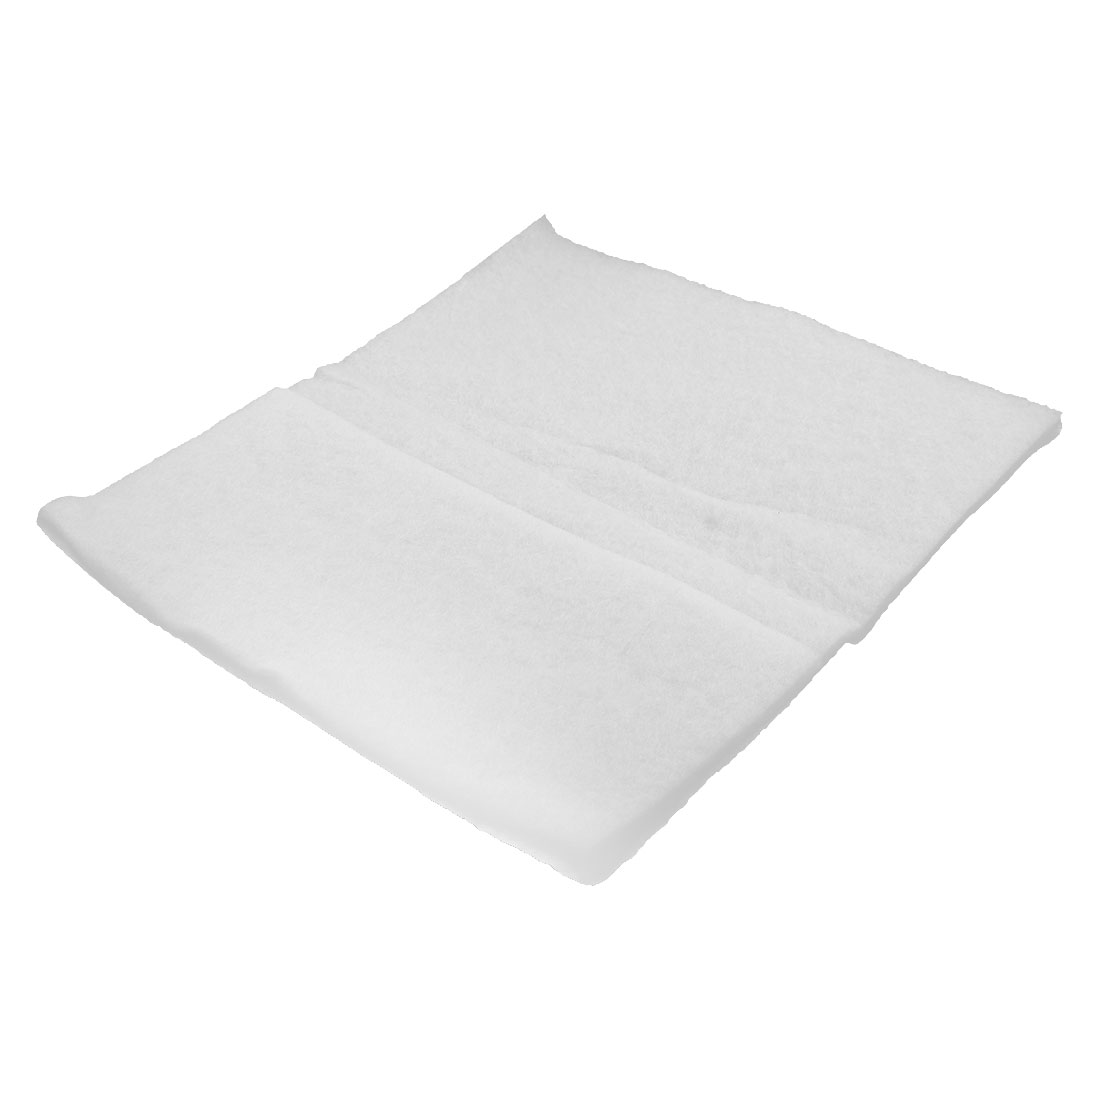 Aquarium Fish Tank Rectangle Shaped Water Filter Biochemical Sponge Pad White